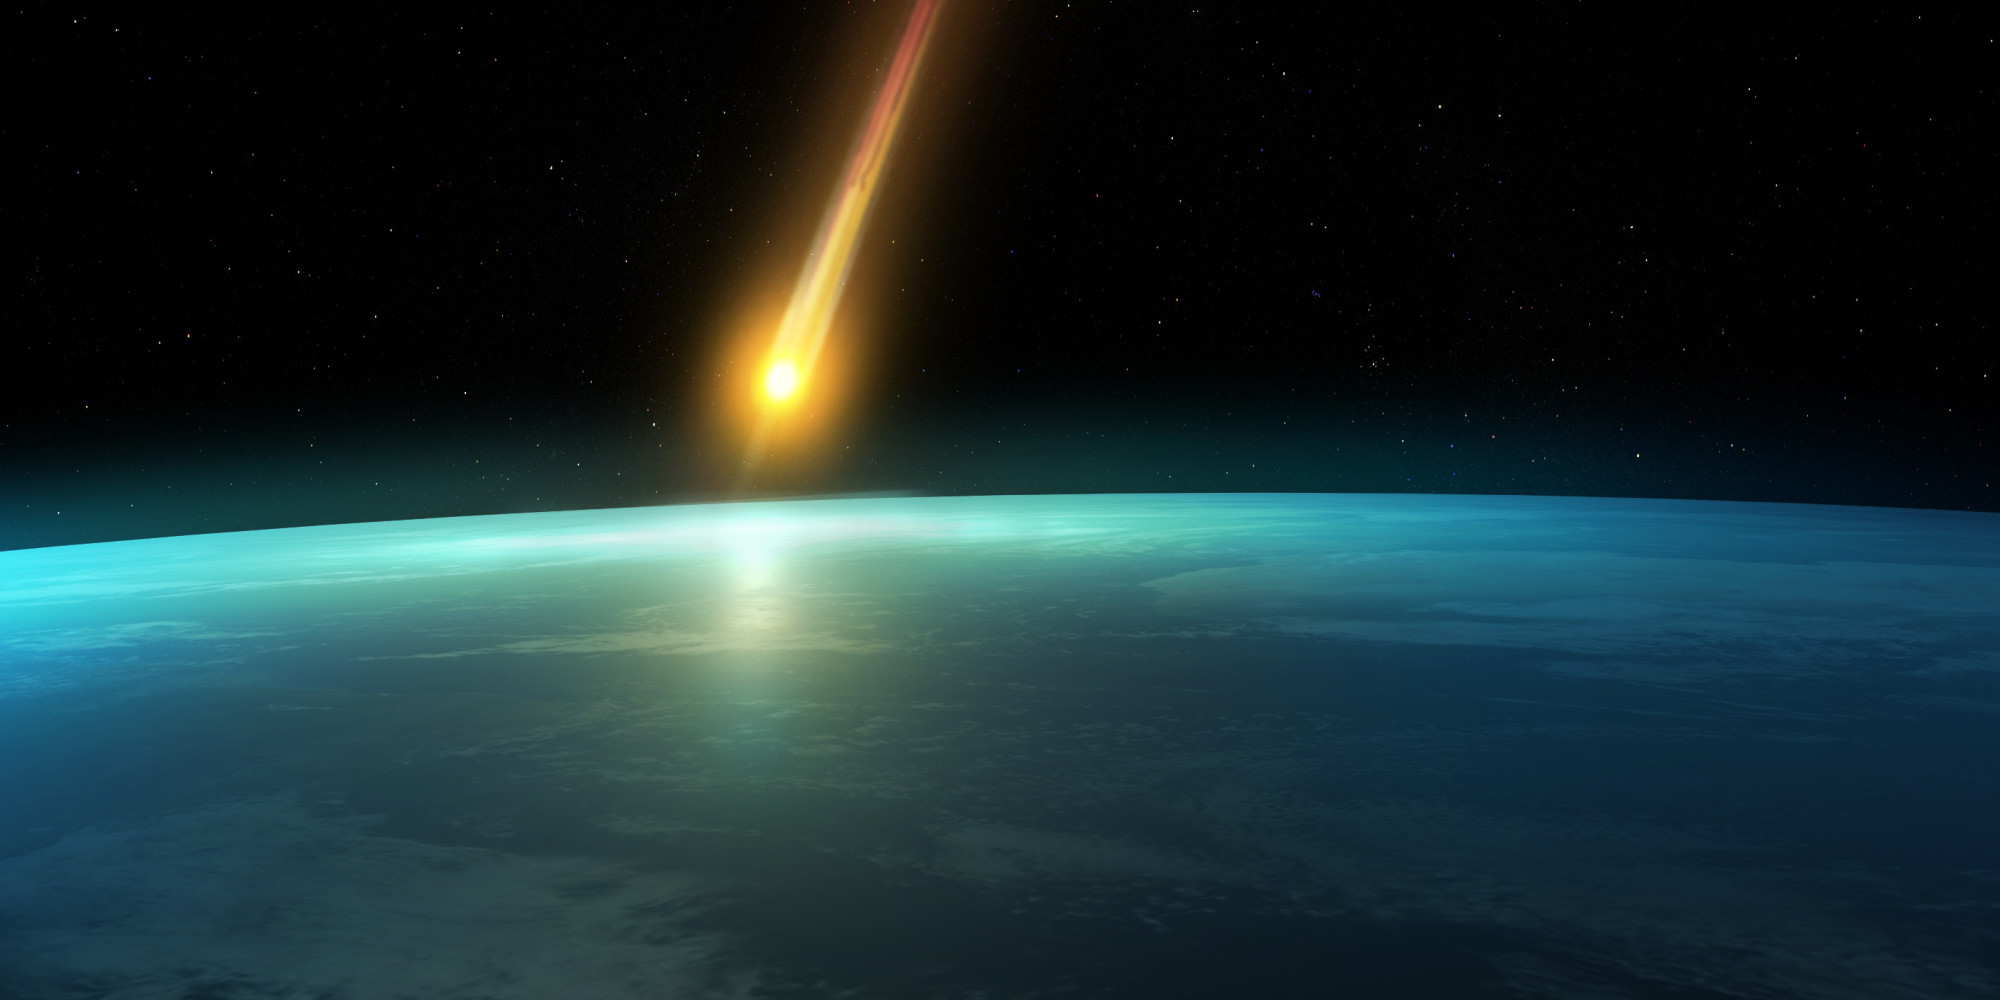 cool comets meteors and asteroids wallpaper - photo #42